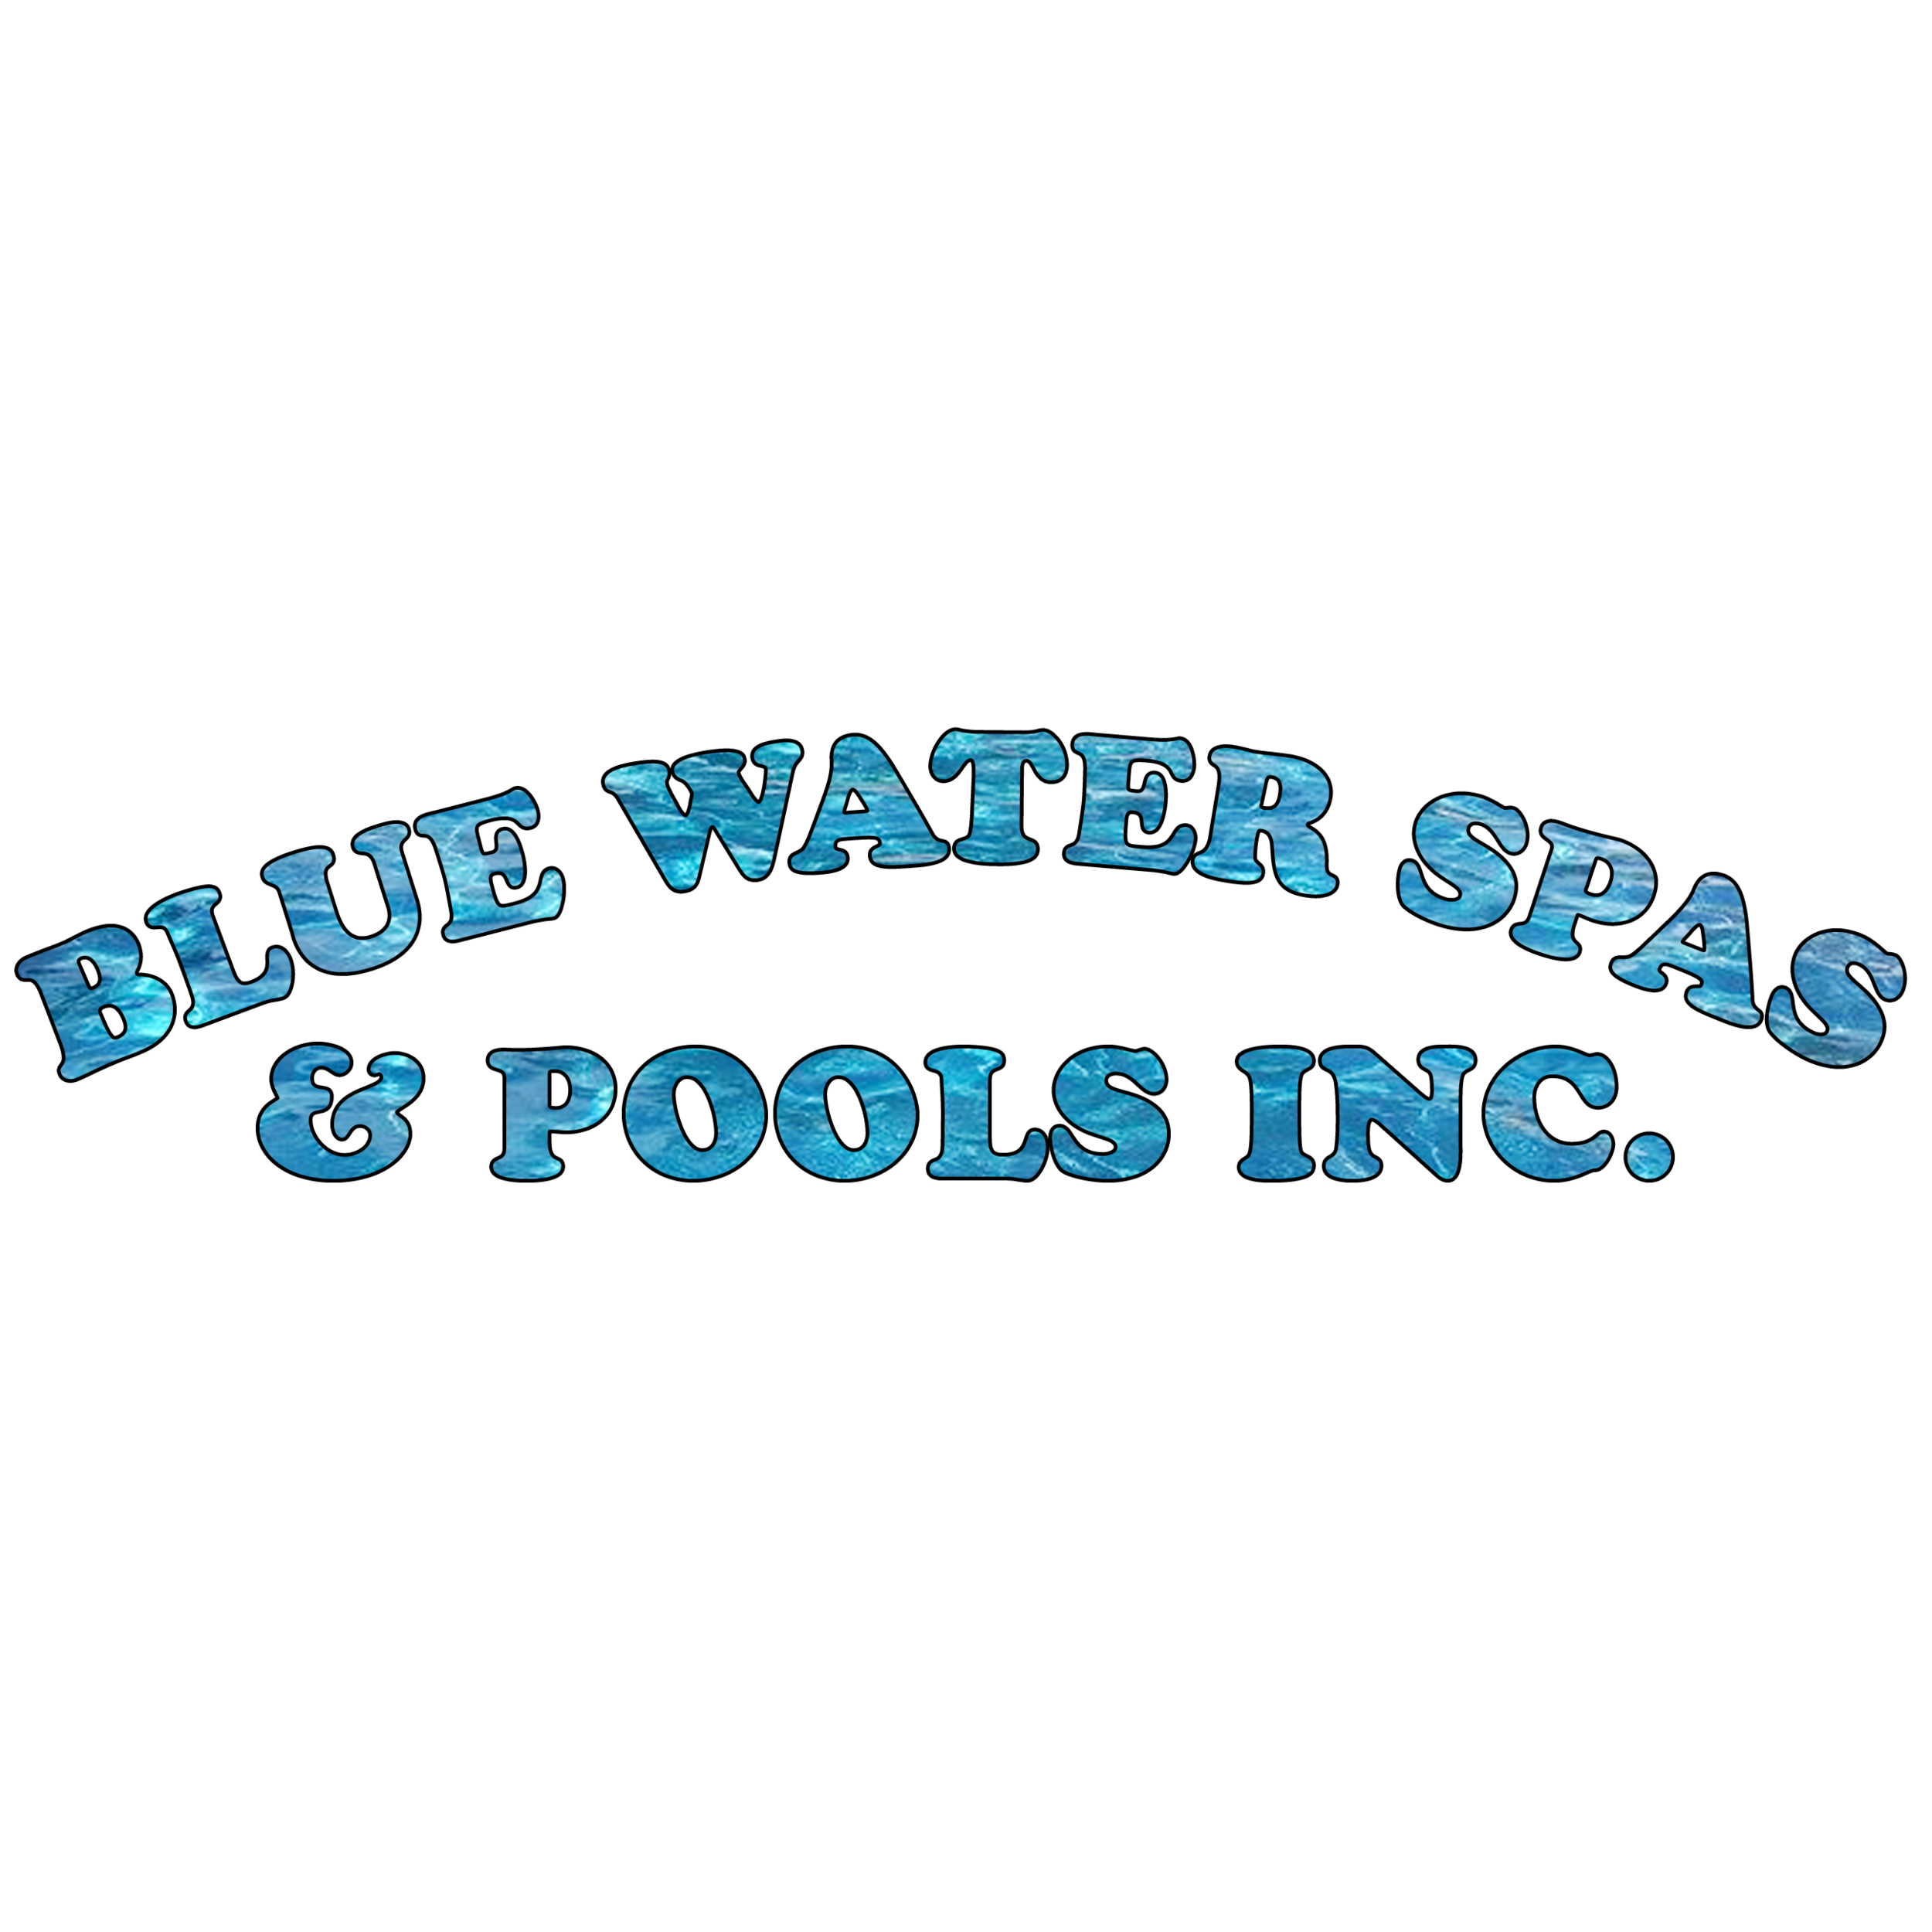 Blue Water Spas & Pools